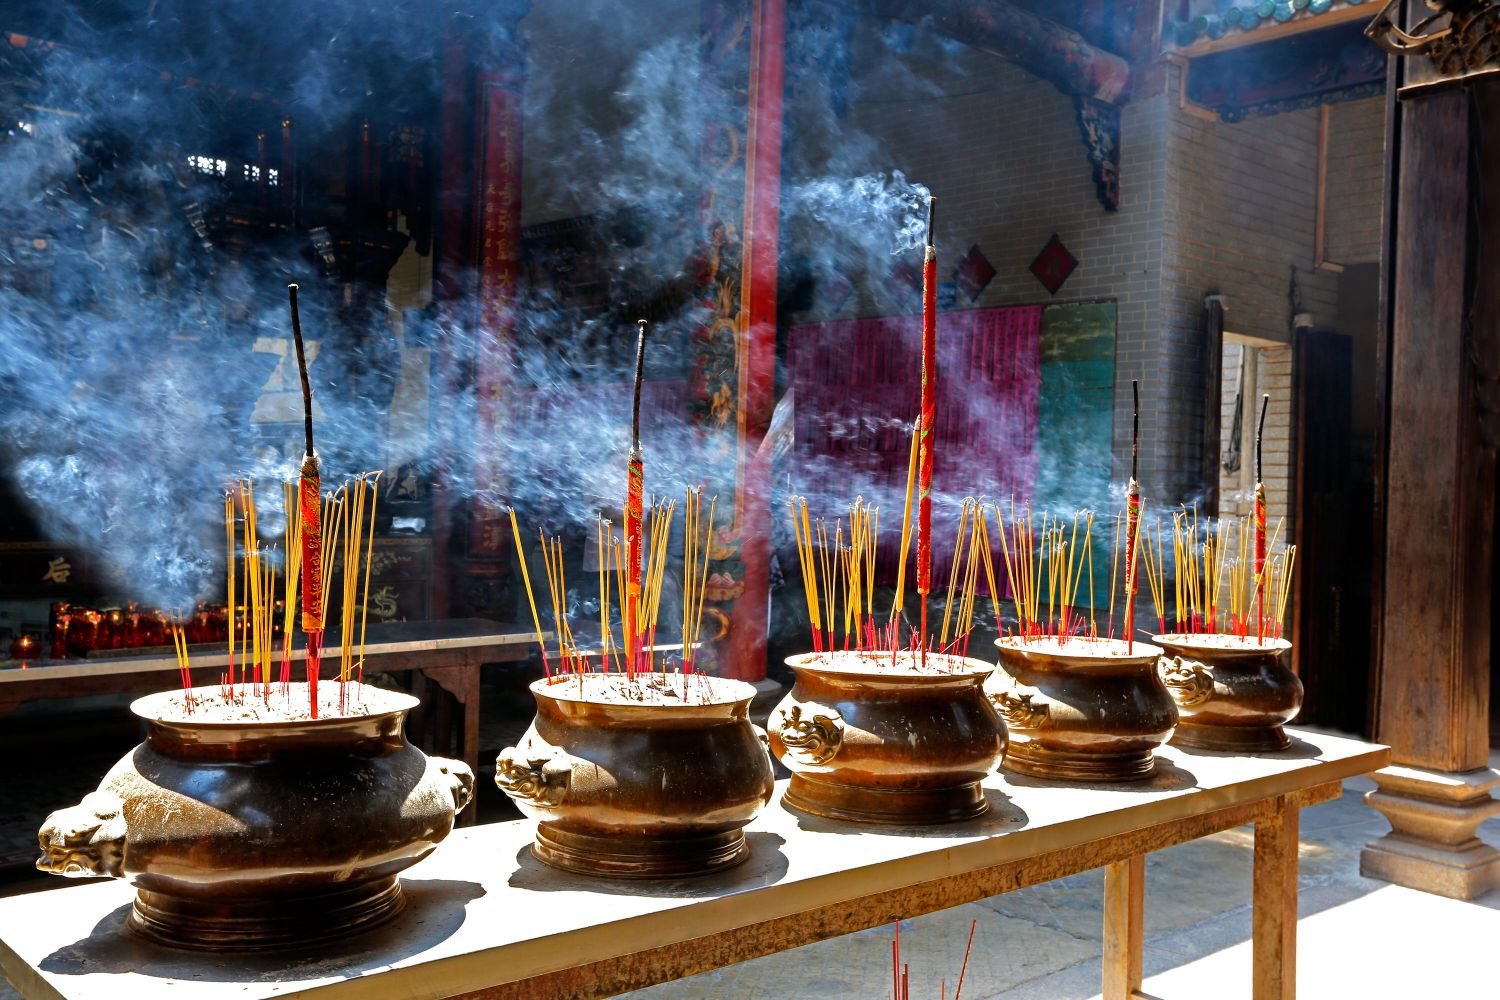 Joss sticks burning in a temple in Ho Chi Minh City Vietnam